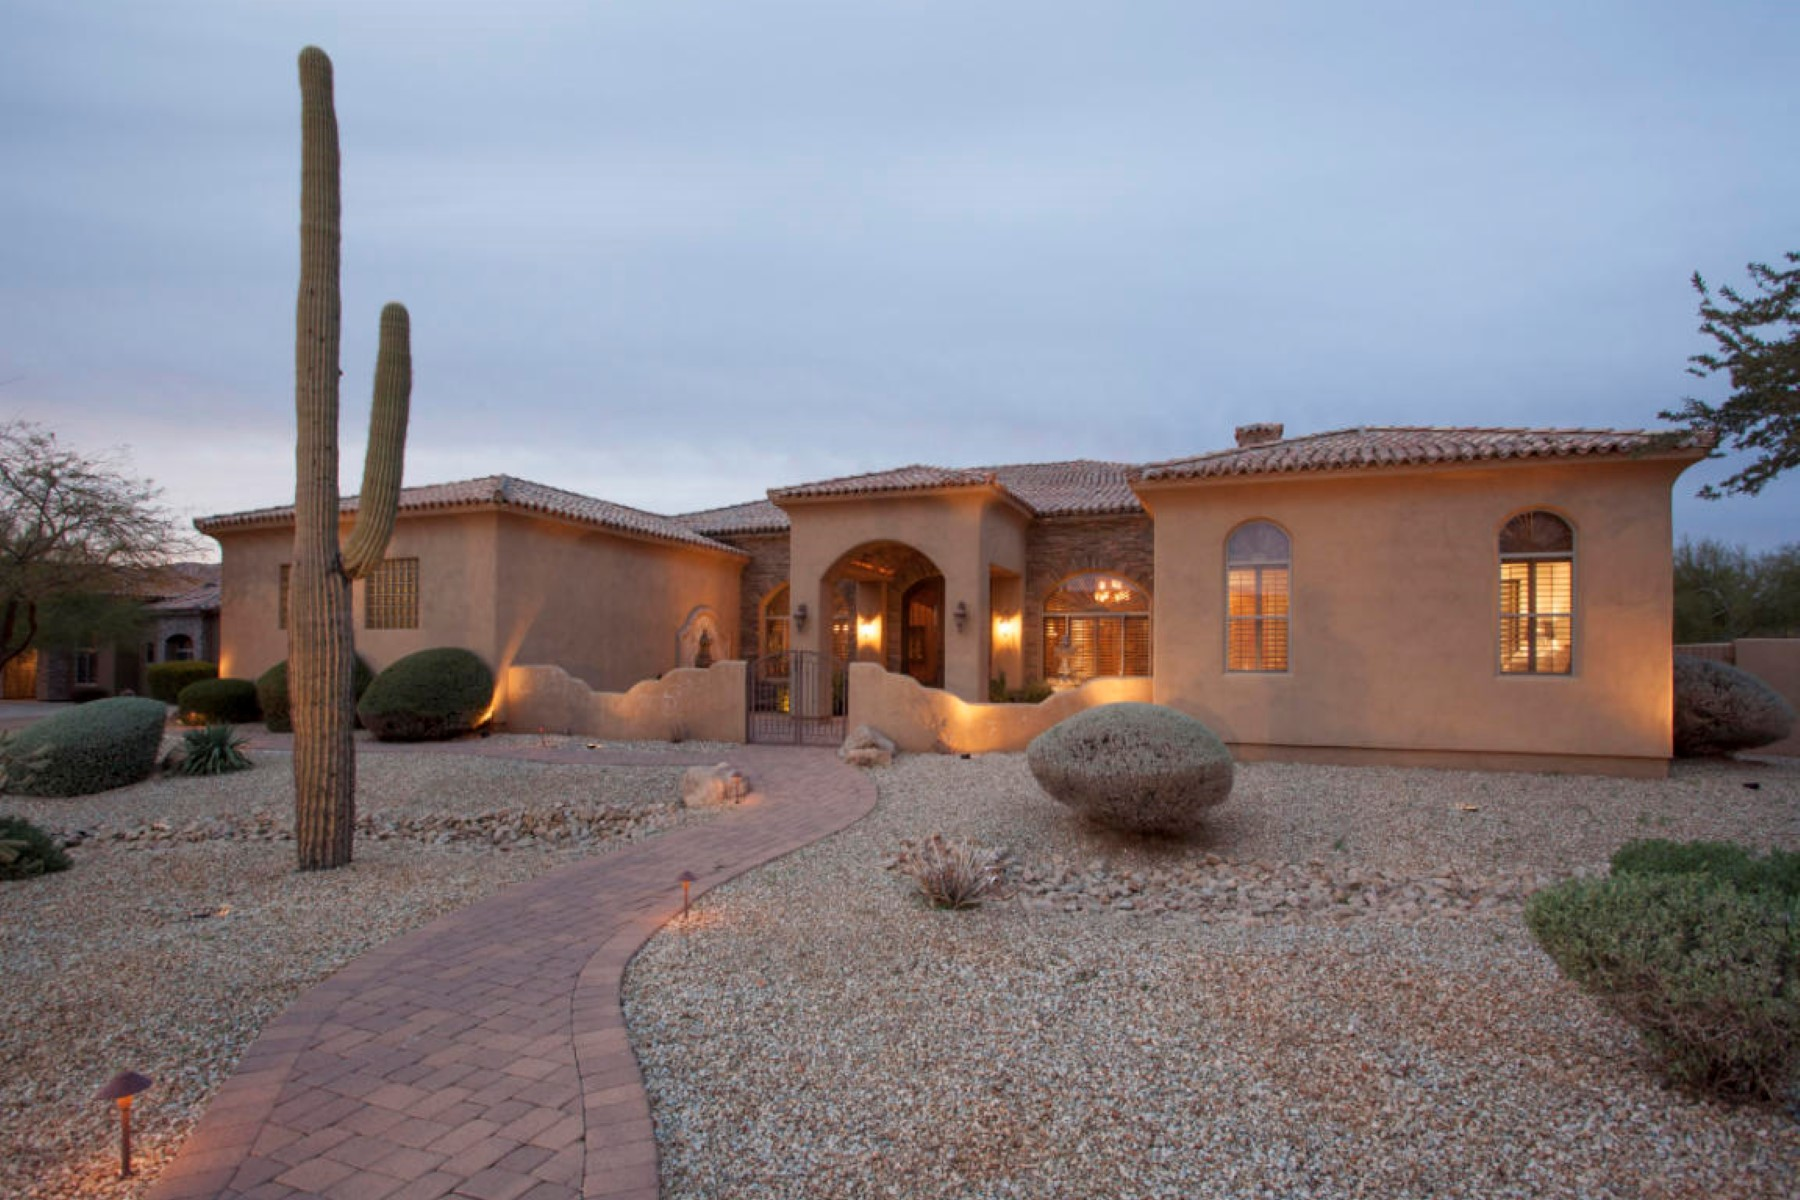 Property For Sale at Tuscan inspired custom home on almost an acre